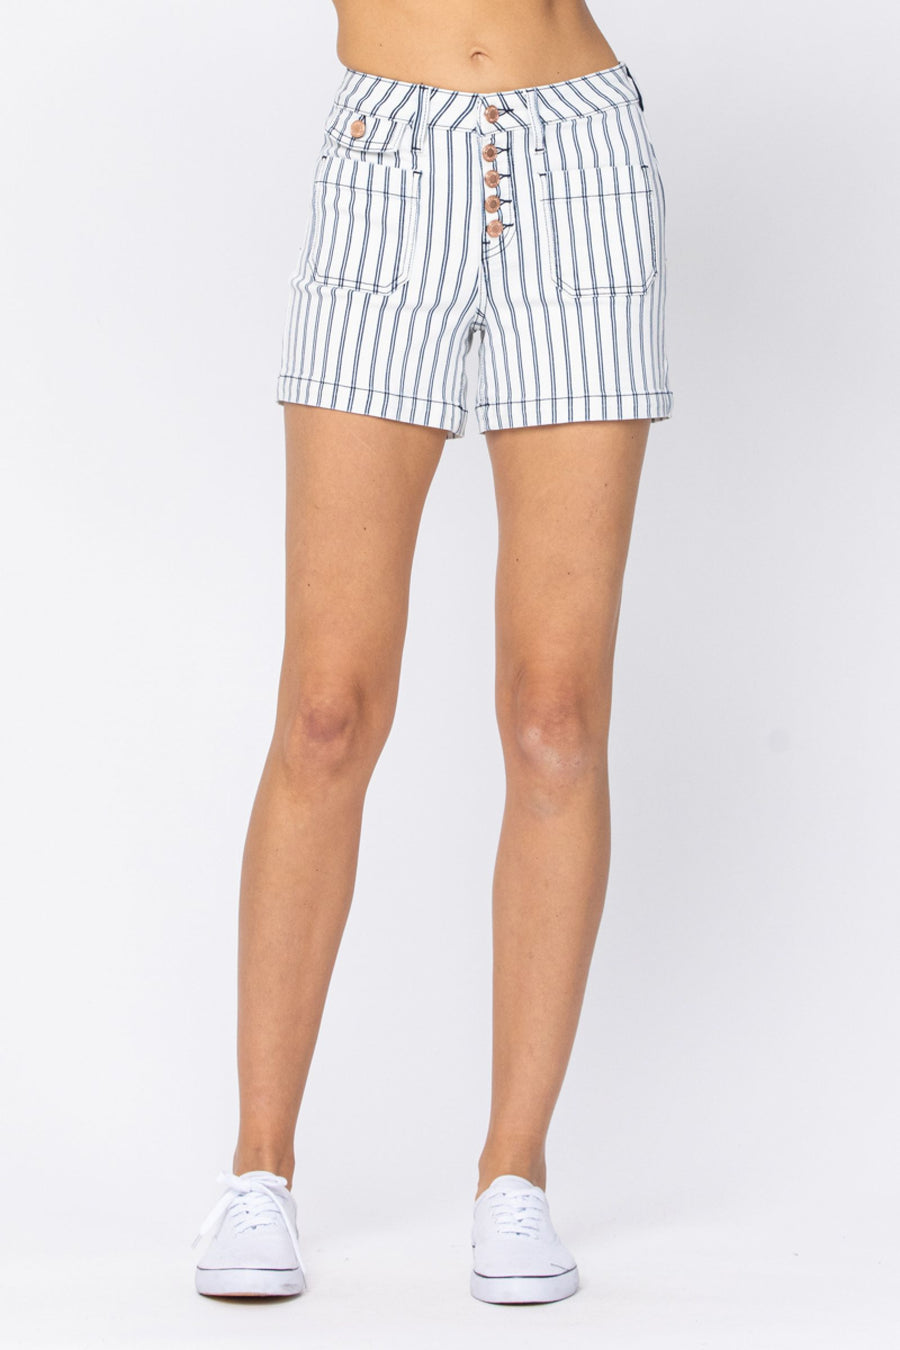 Judy Blue High Waist Stripe Short- 150078